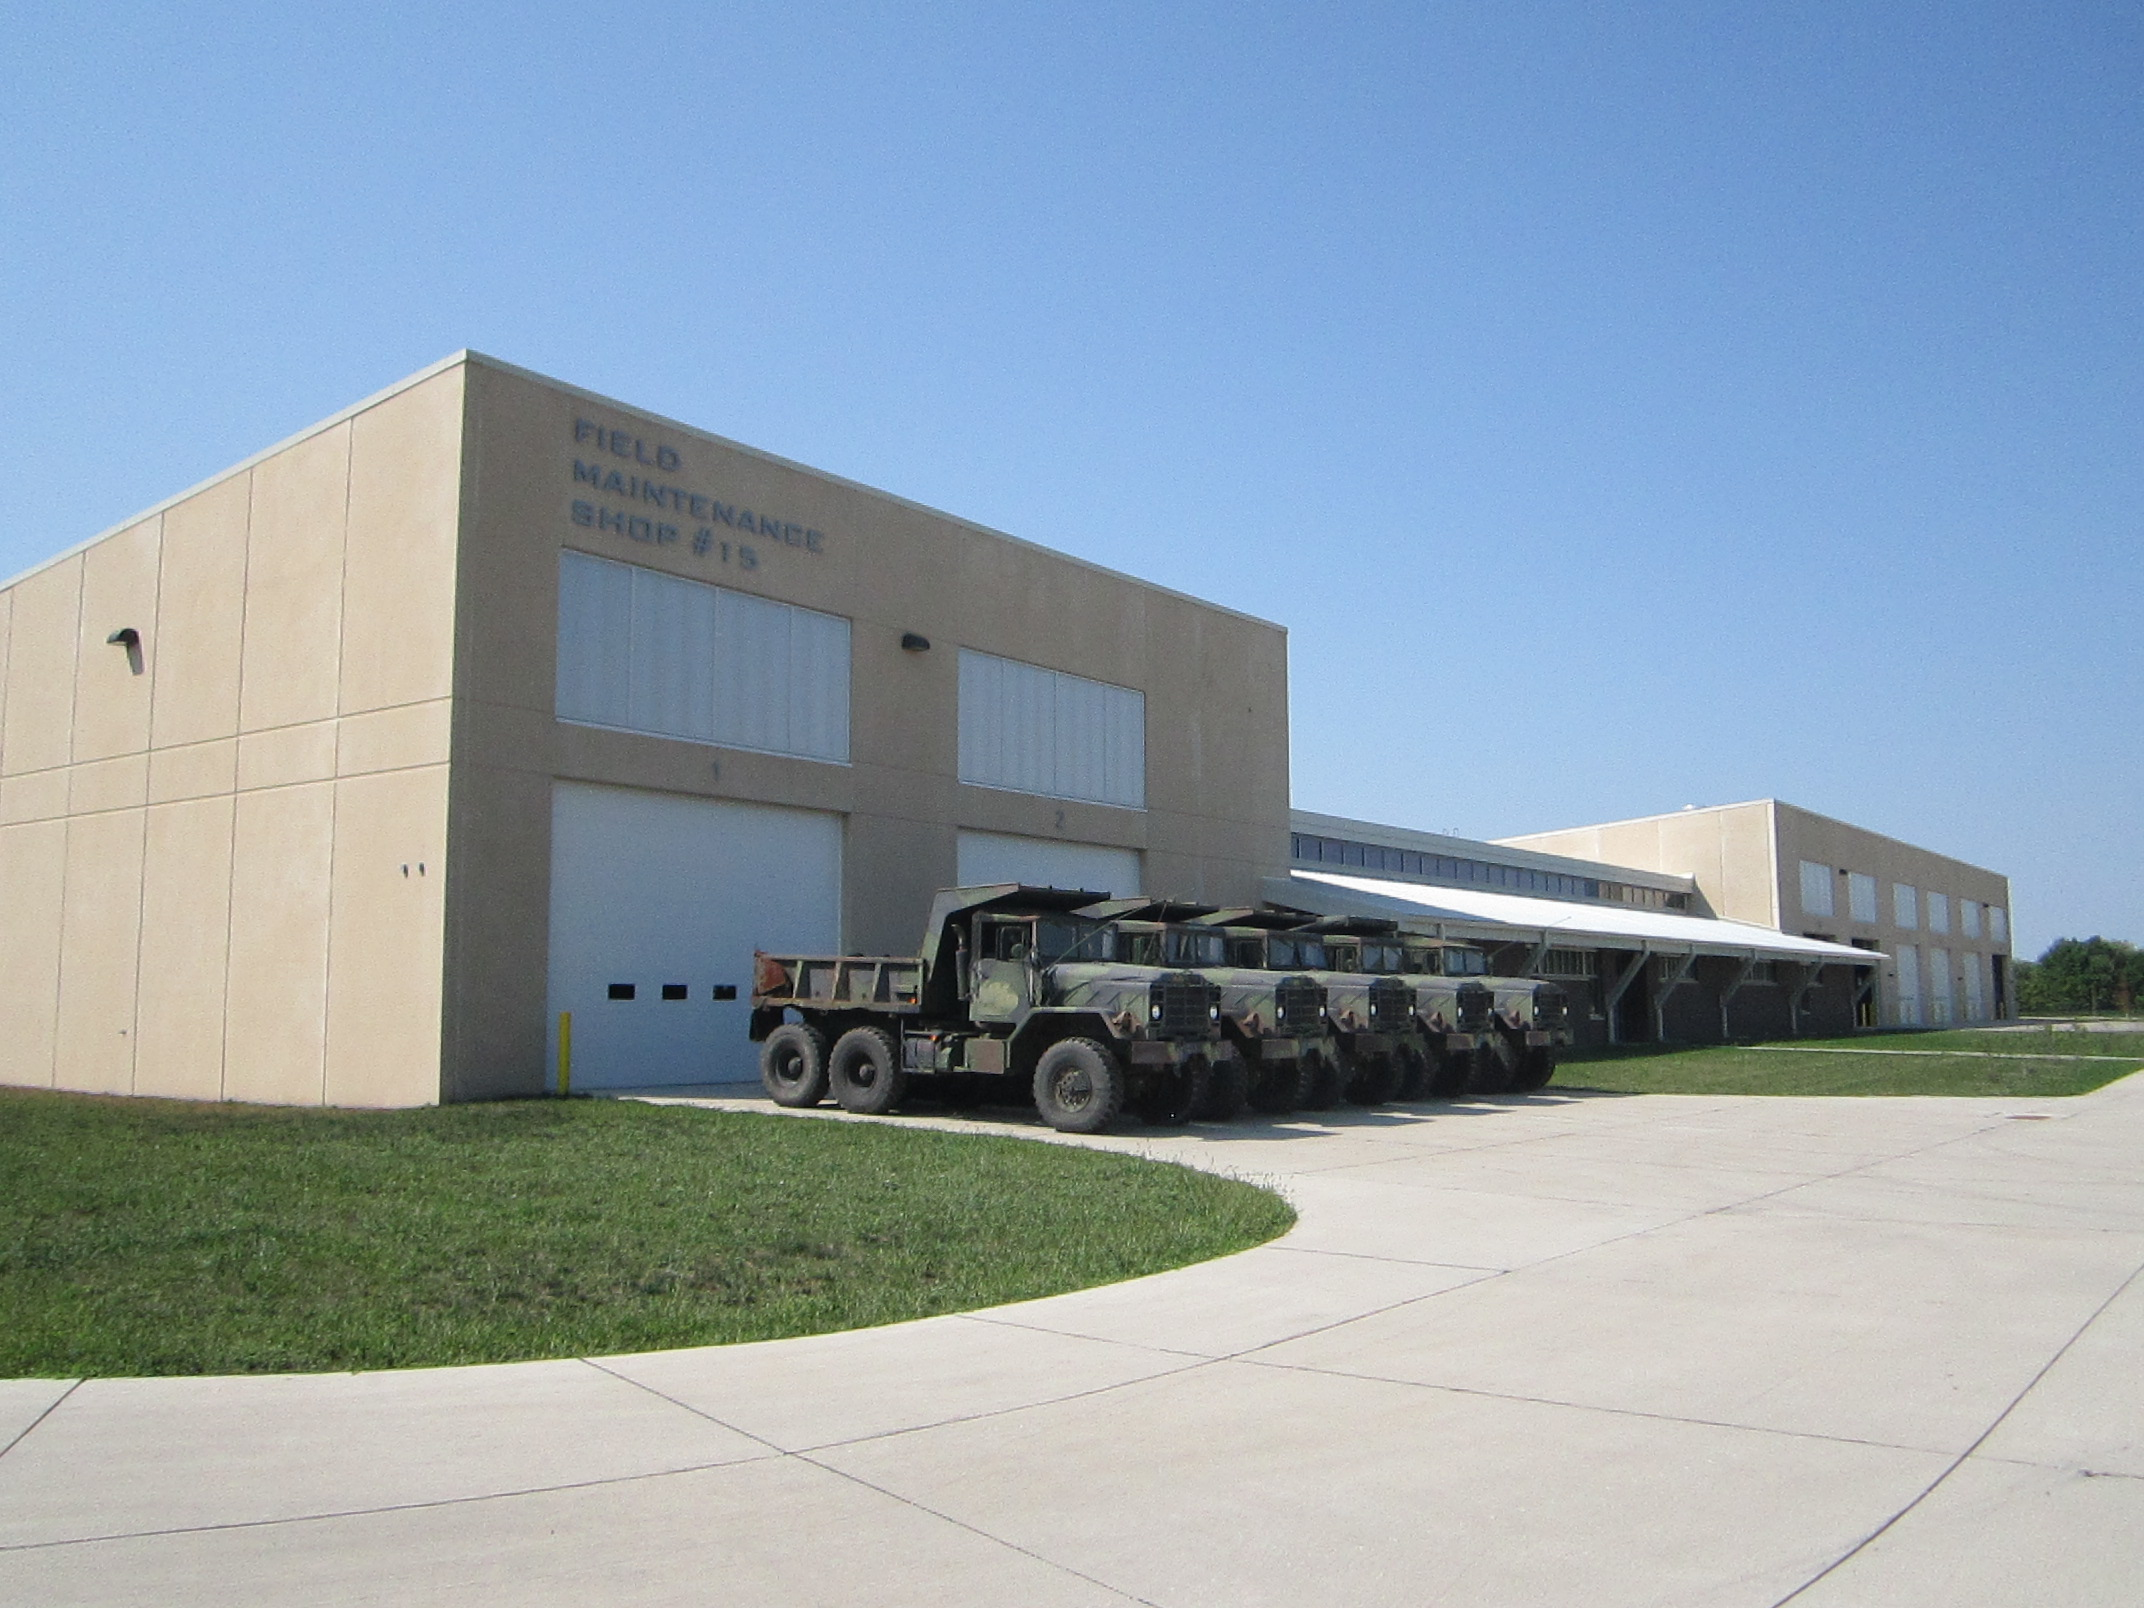 Exterior field maintenance shop at the Iowa Army National Guard in Middletown, Iowa